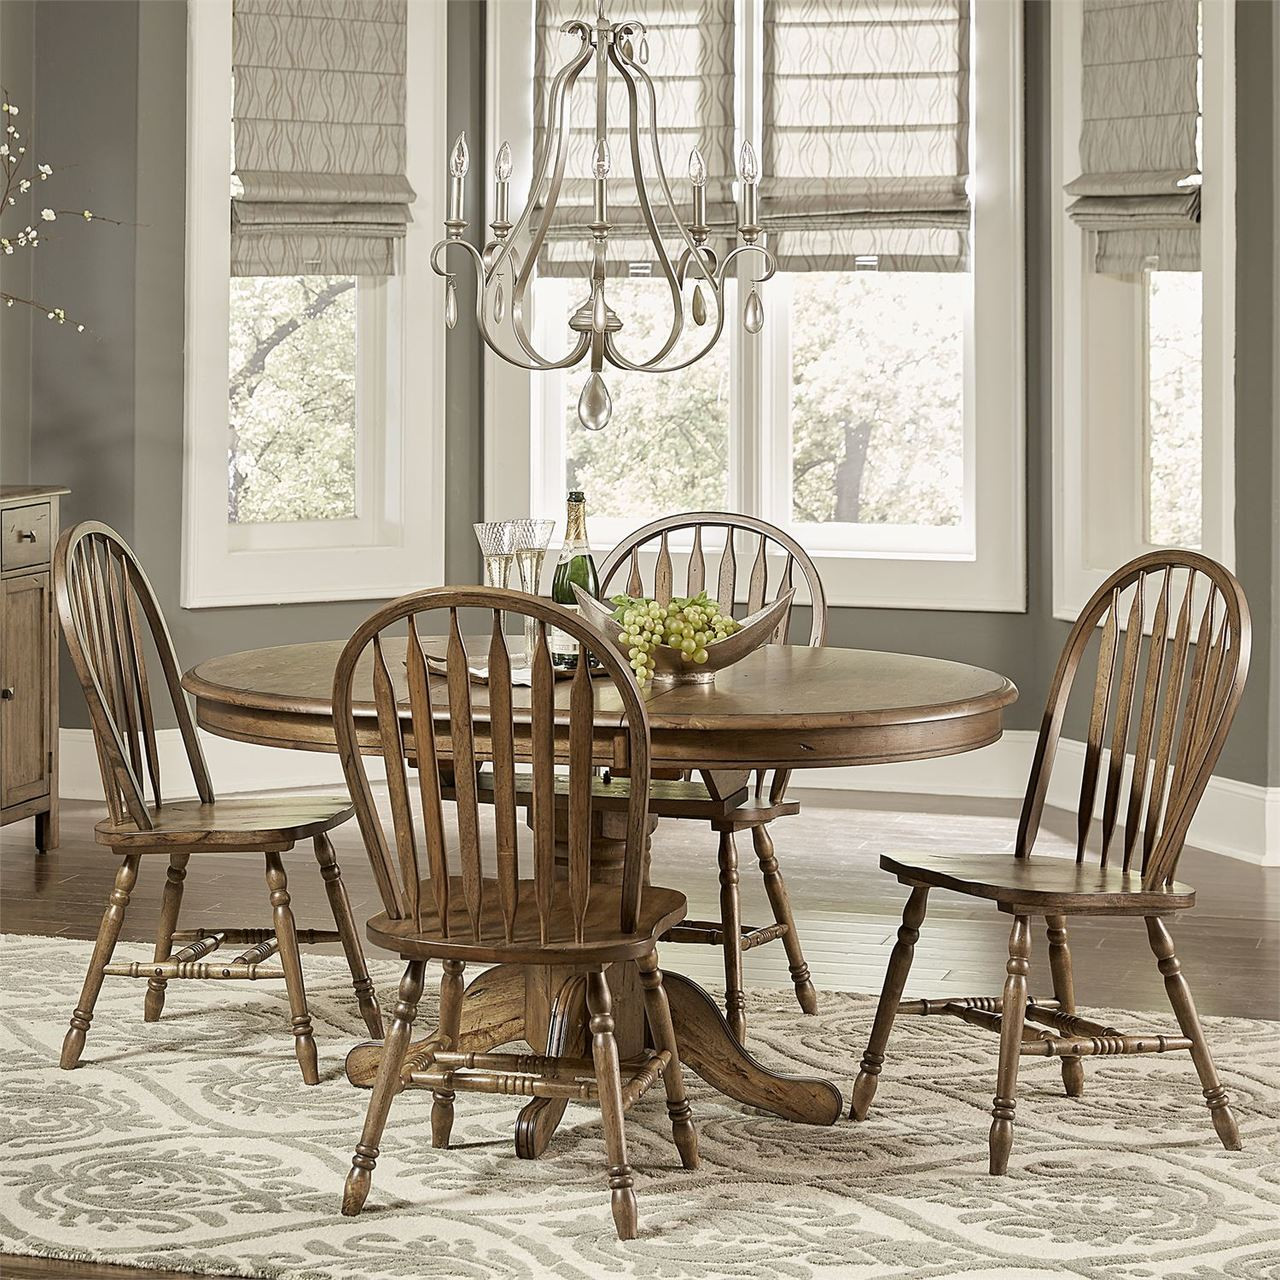 Cheap Furniture Free Shipping: Pedestal Table Dining Set W/ Server By FREE SHIPPING